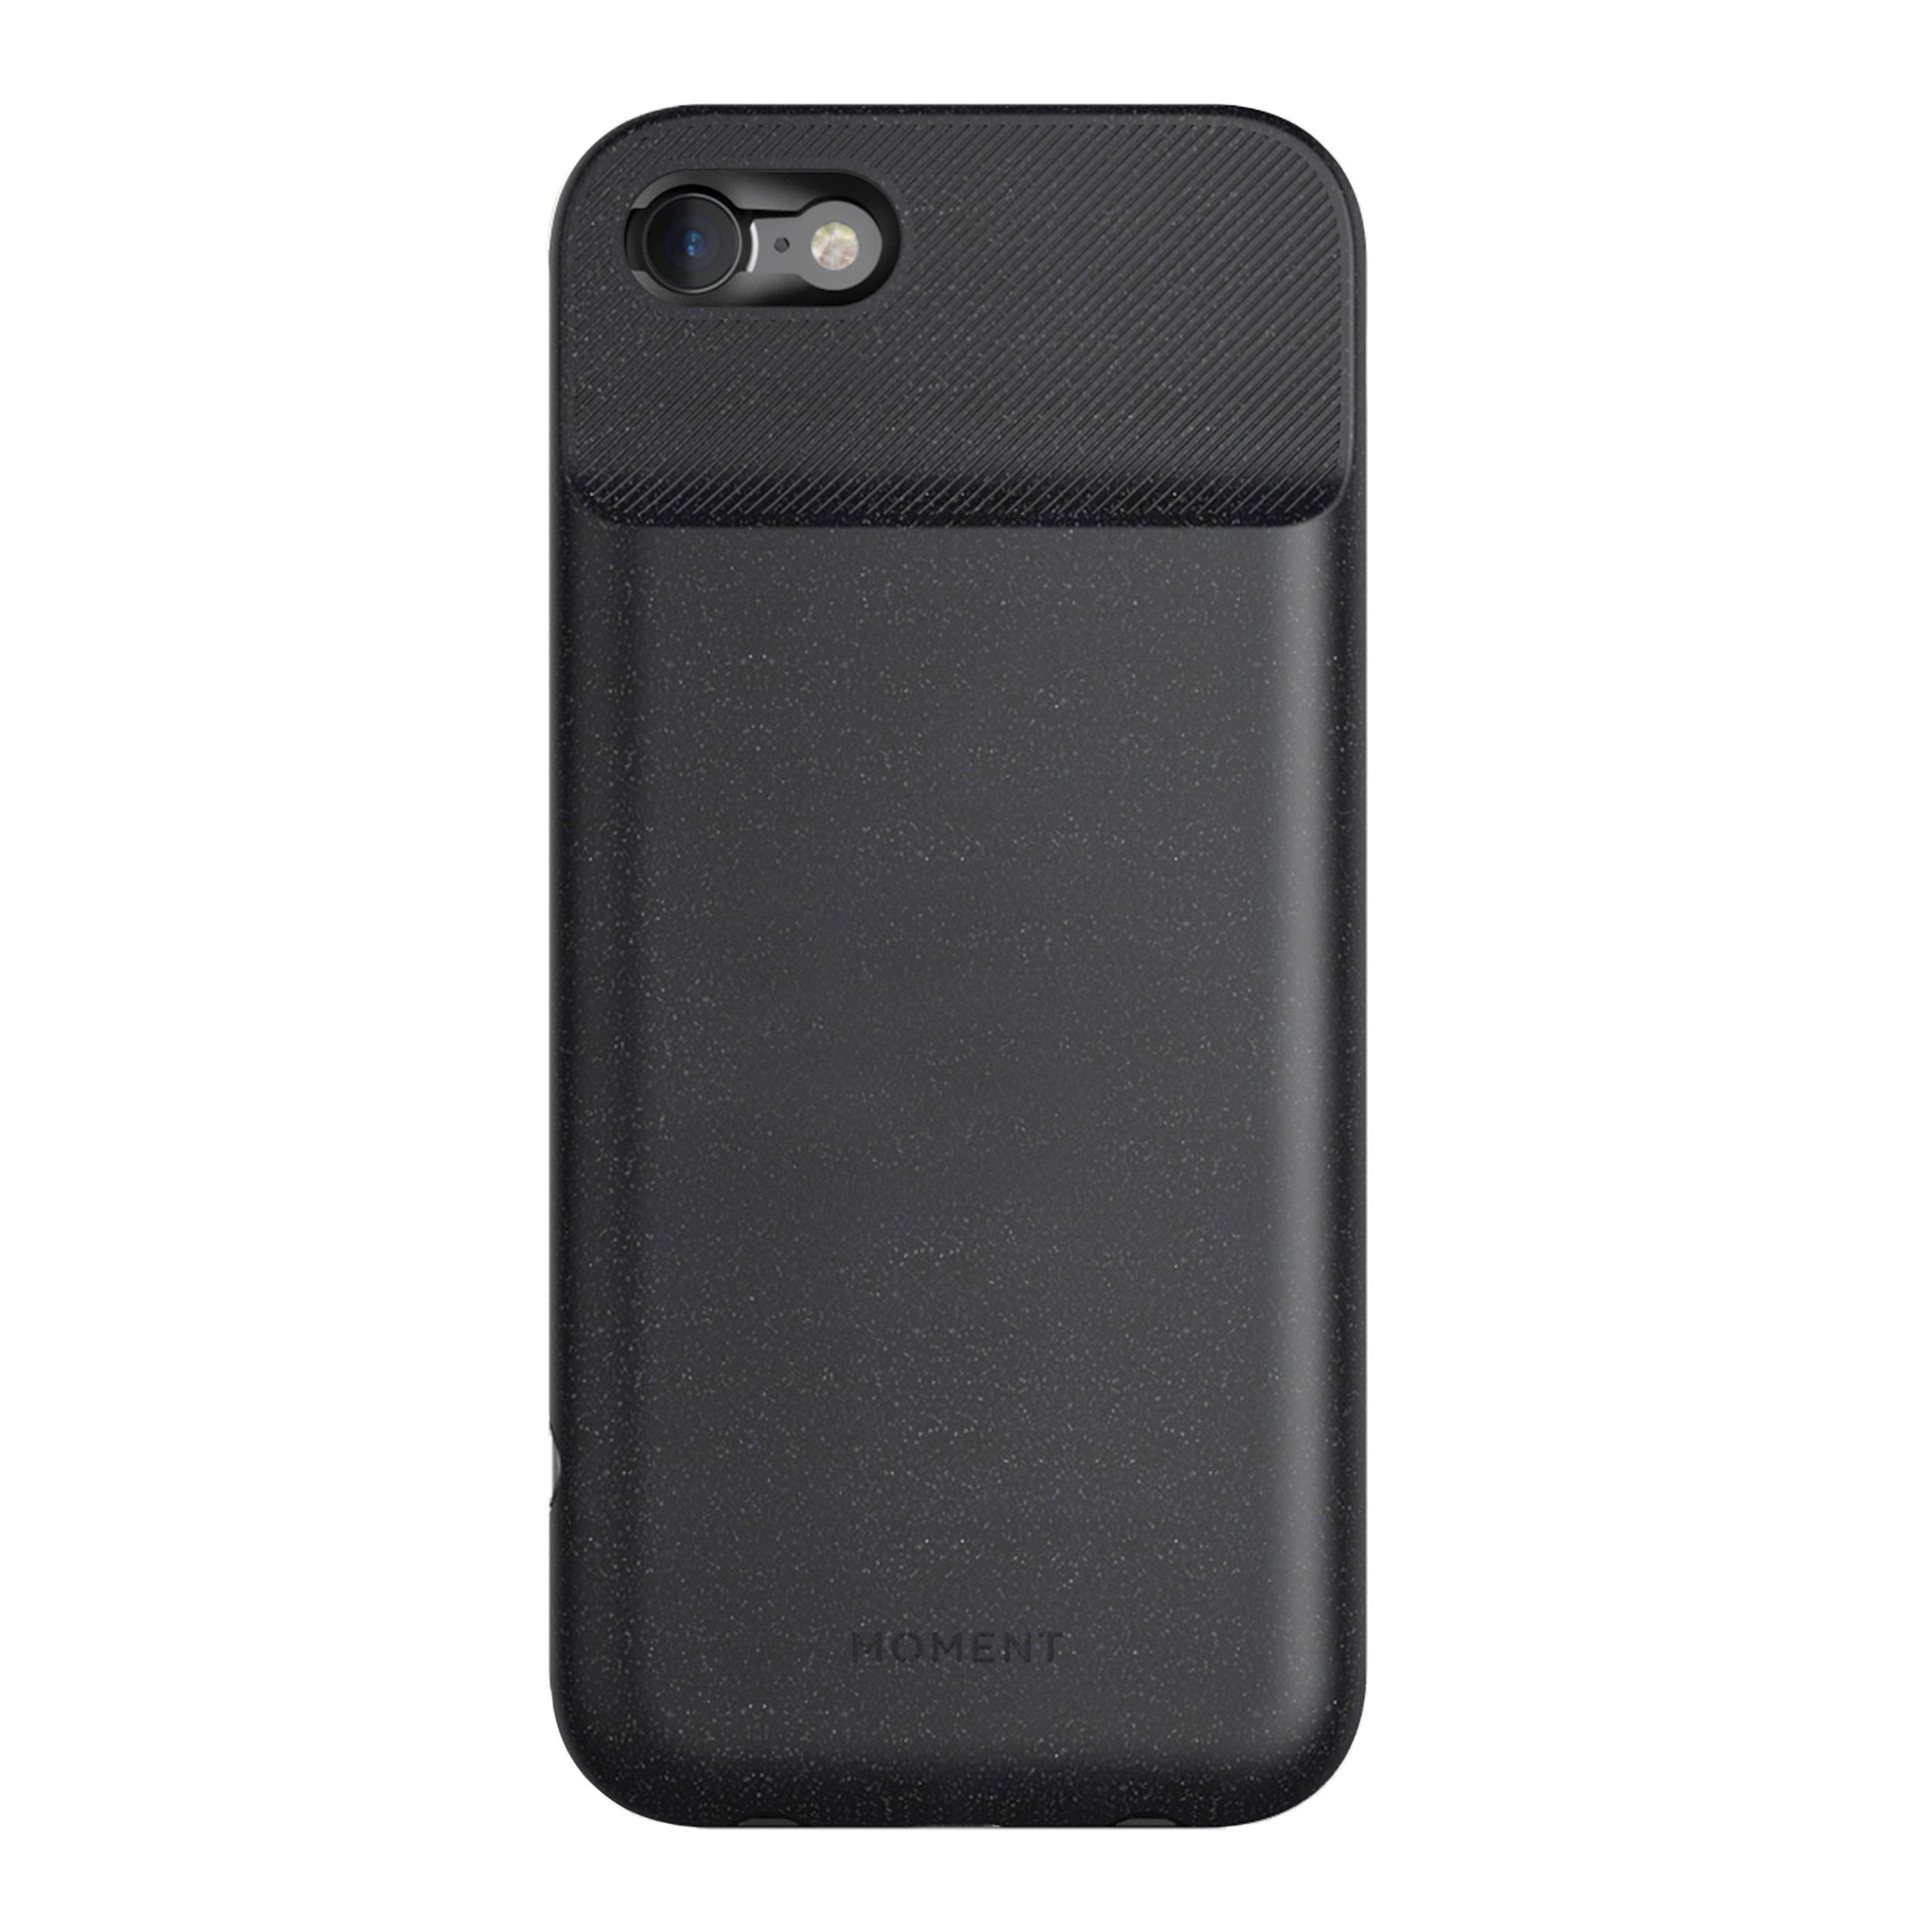 Moment - iPhone 7/8 Battery Case - Black - Protect, Charge, and take Better Pictures.